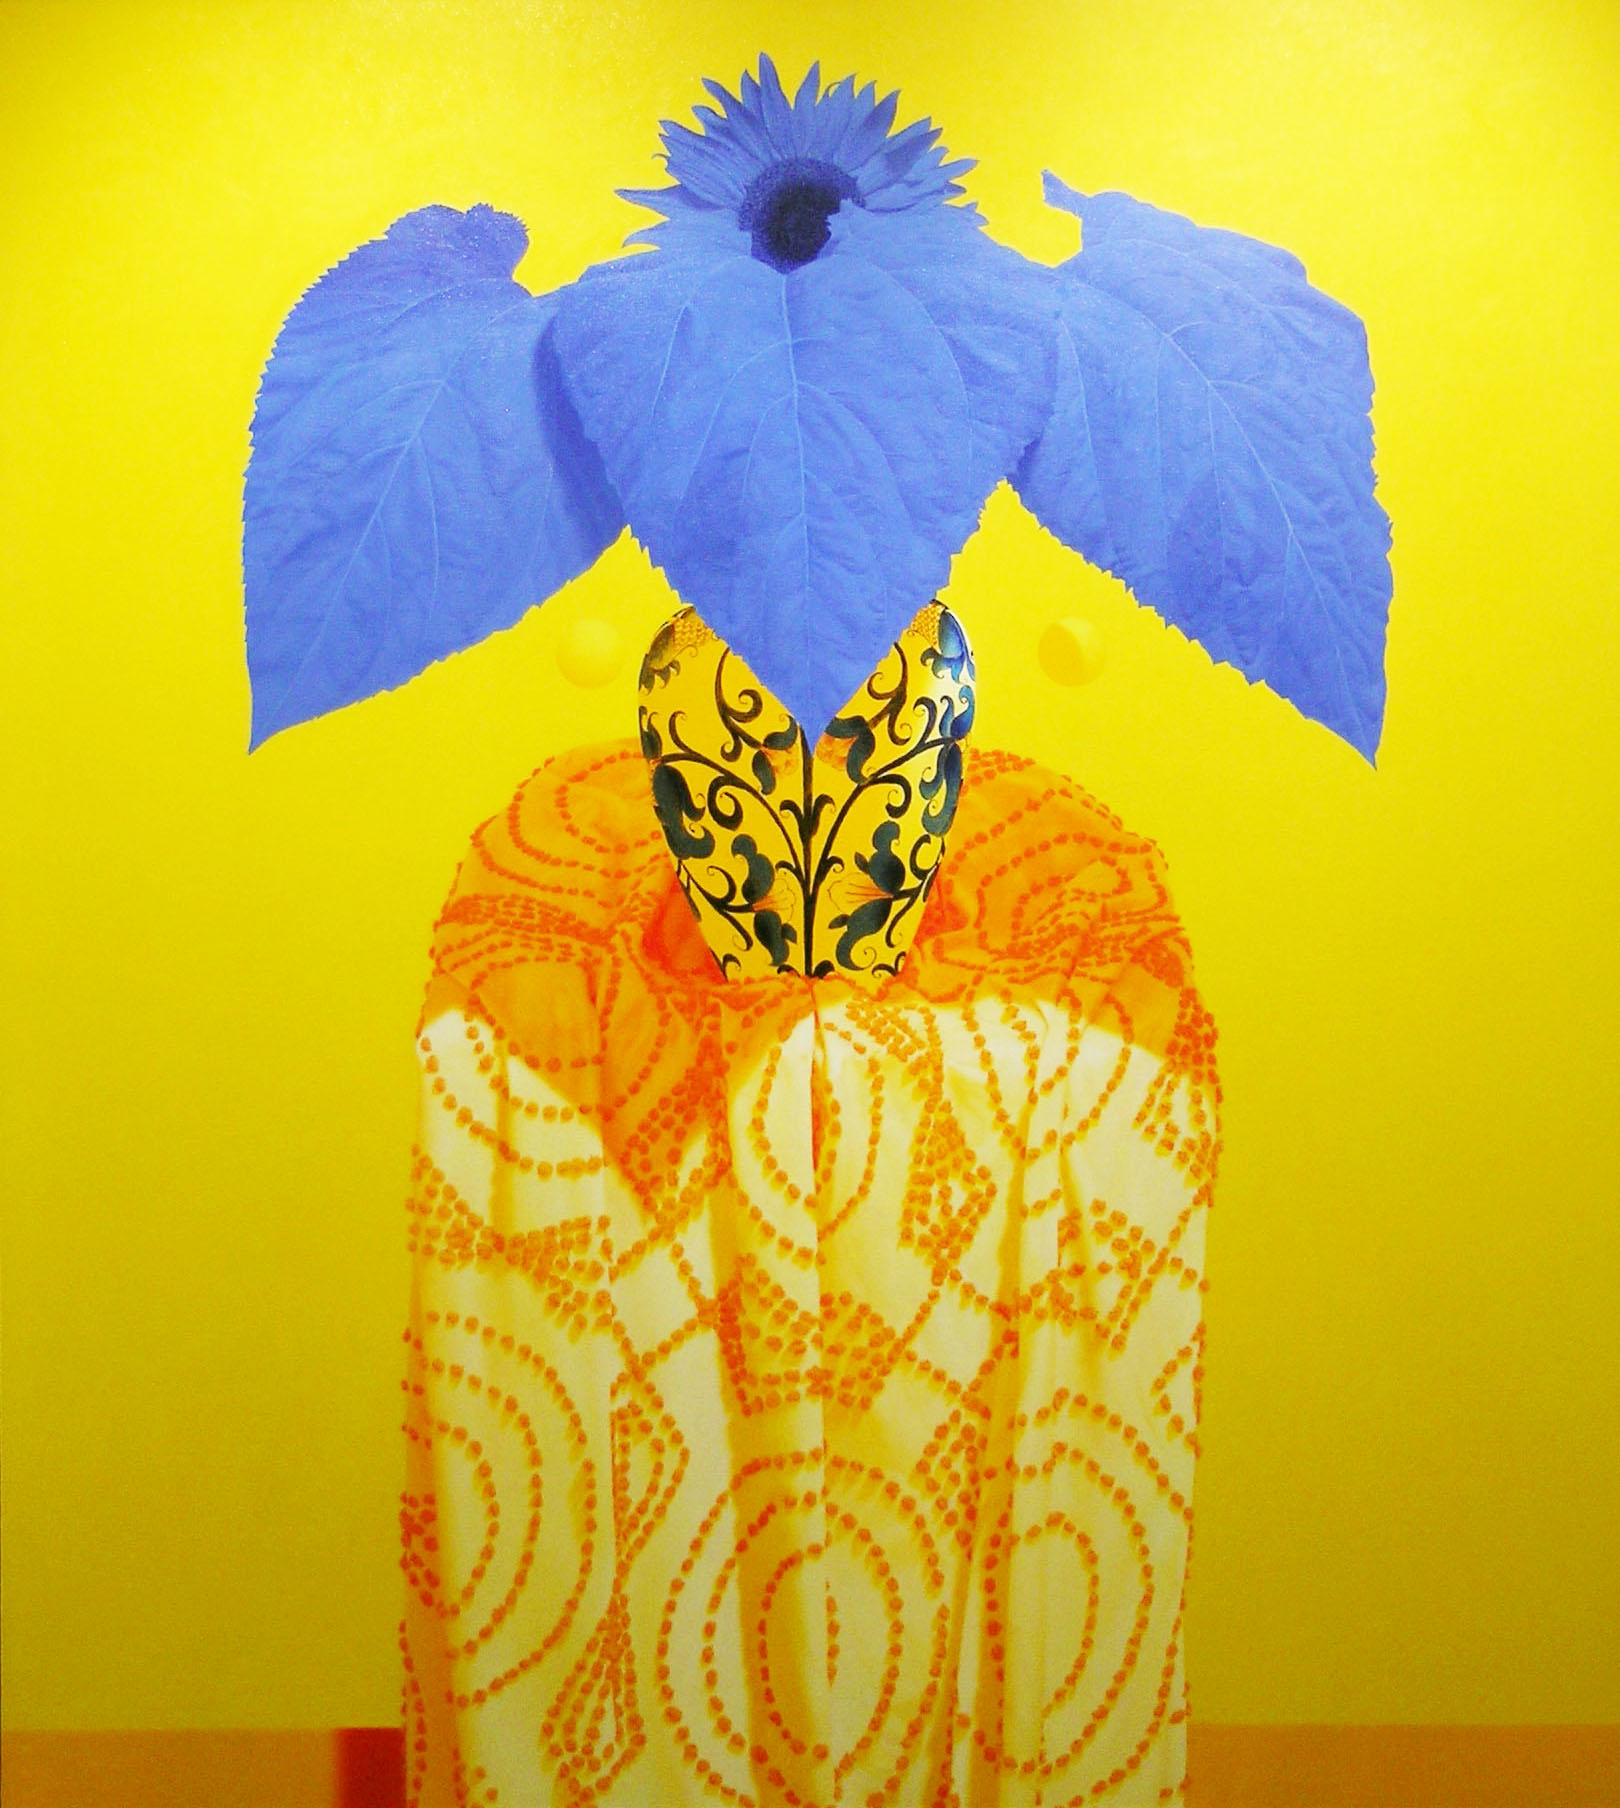 Blue Sunflower, 2005 oil on canvas, 64 x 57 inches